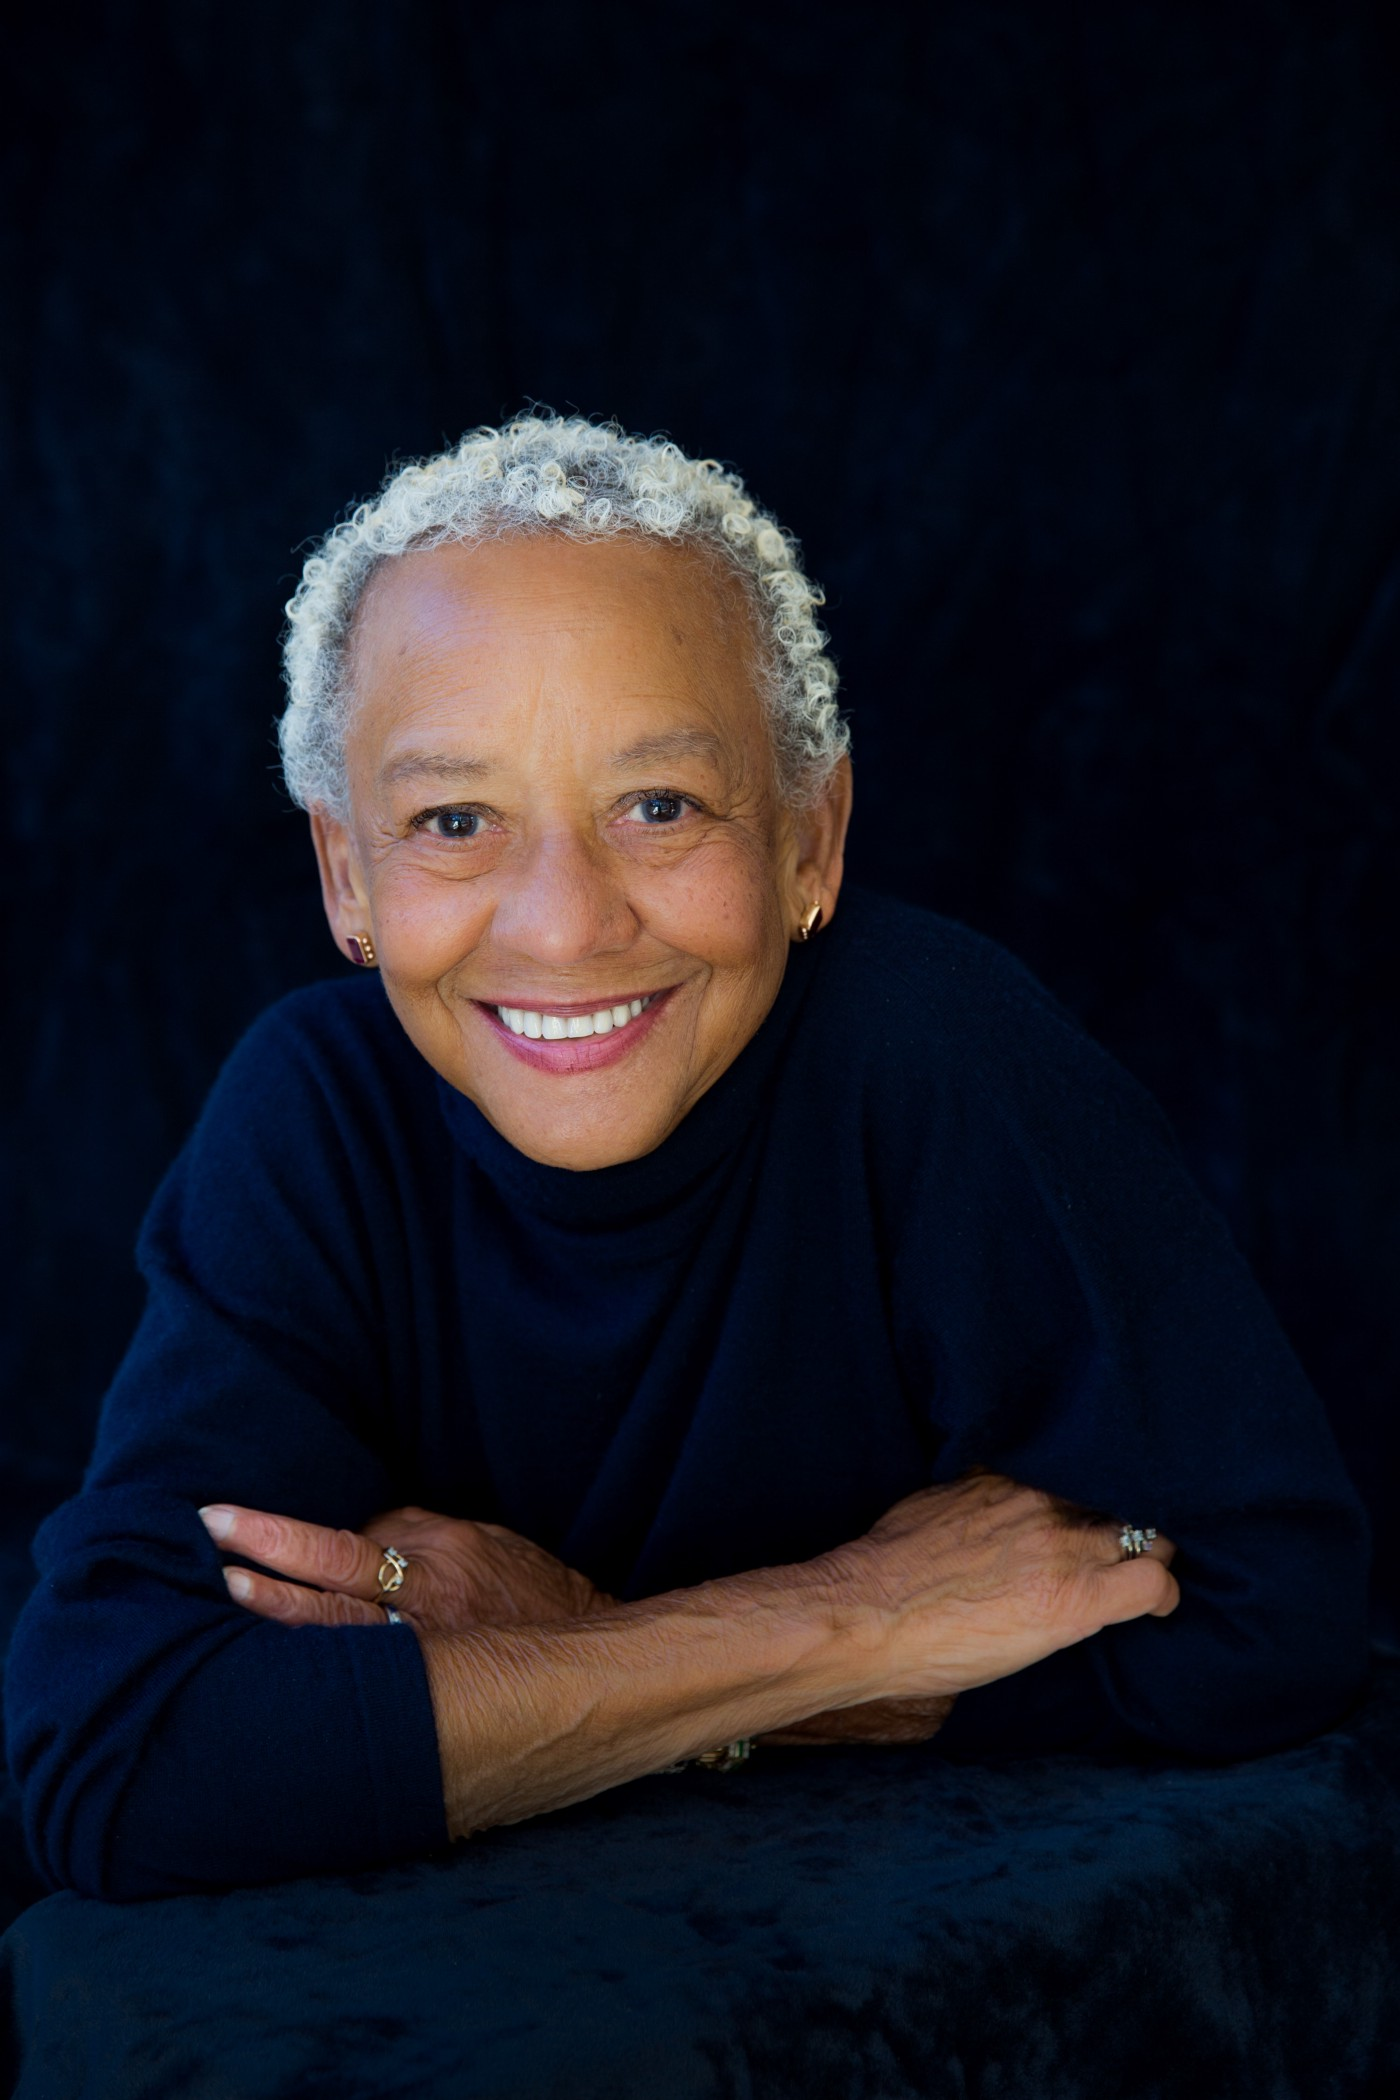 Portrait photo of Nikki Giovanni against a black background.